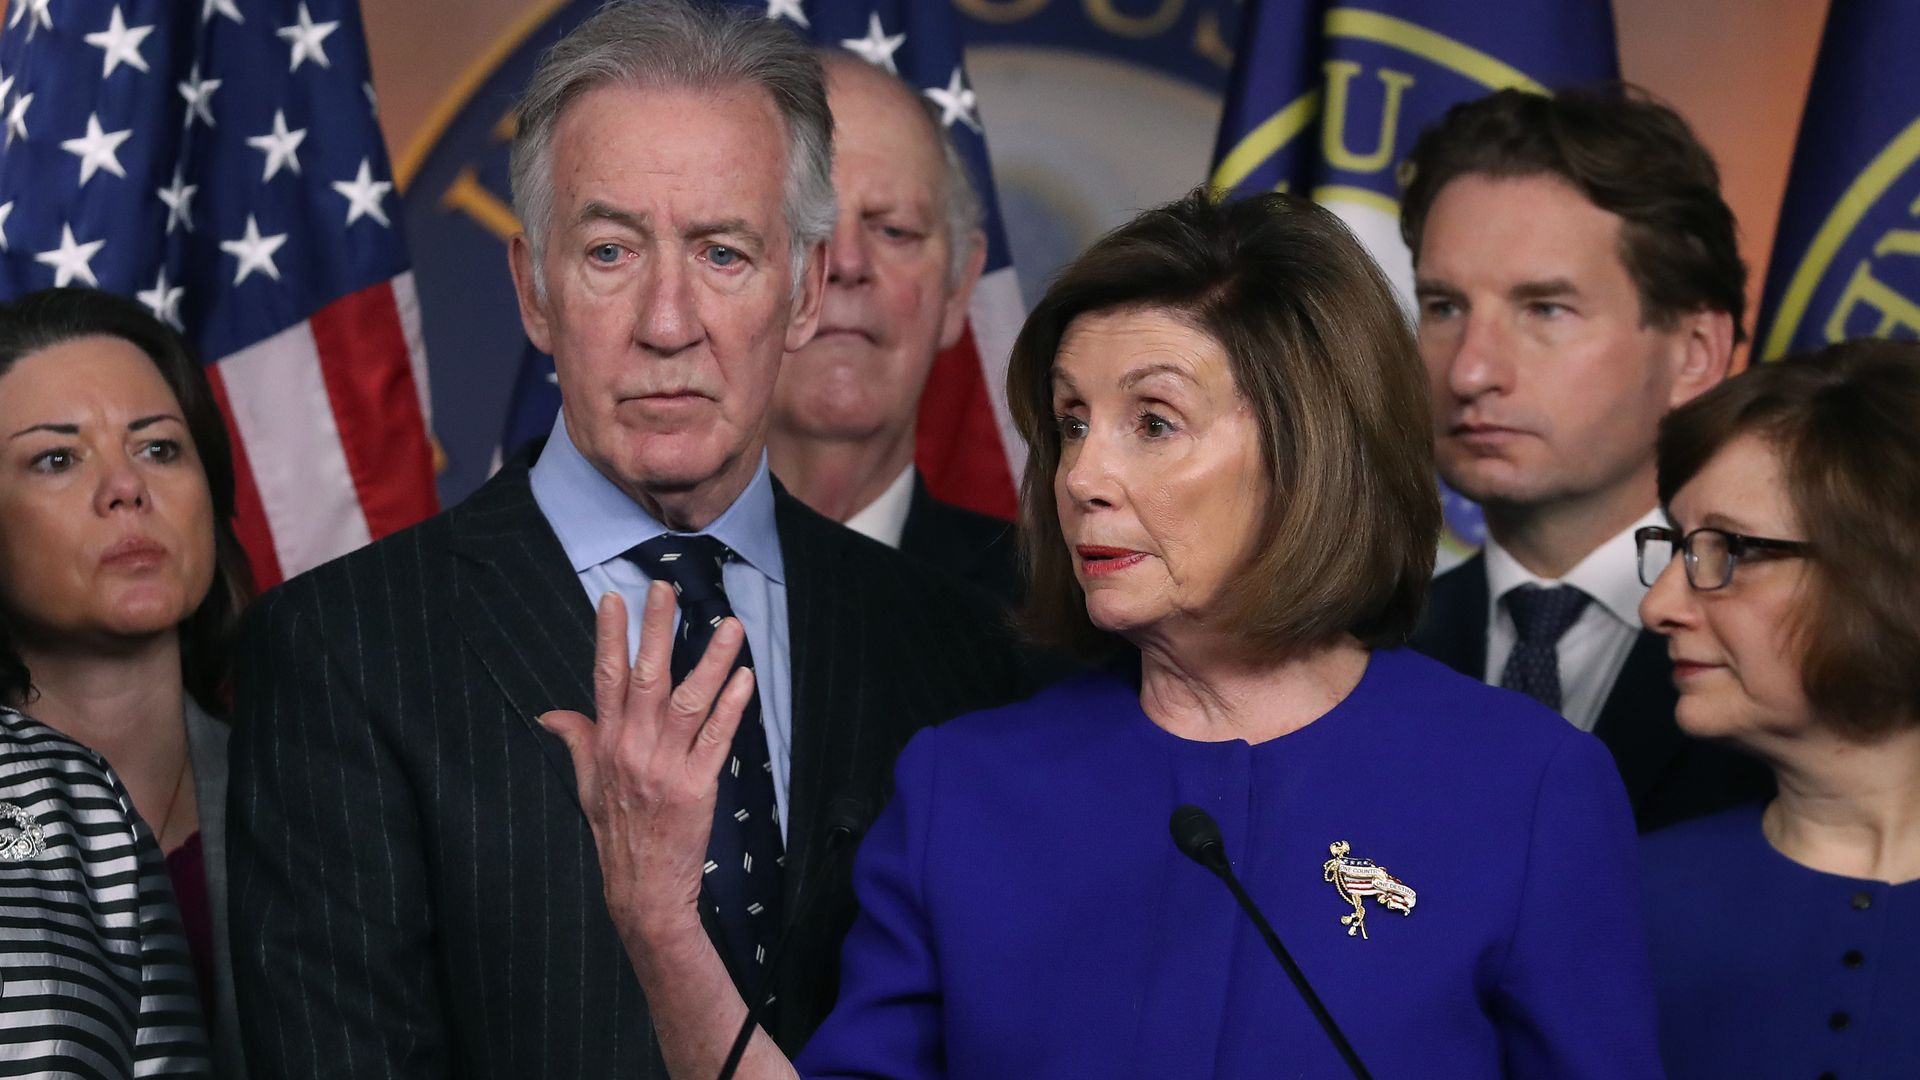 U.S. House Speaker Nancy Pelosi (D-CA) and Ways and Means Committee Chairman Richard E. Neal (D-MA) (L), speak during a news conference on the USMCA trade agreement, on Capitol Hill